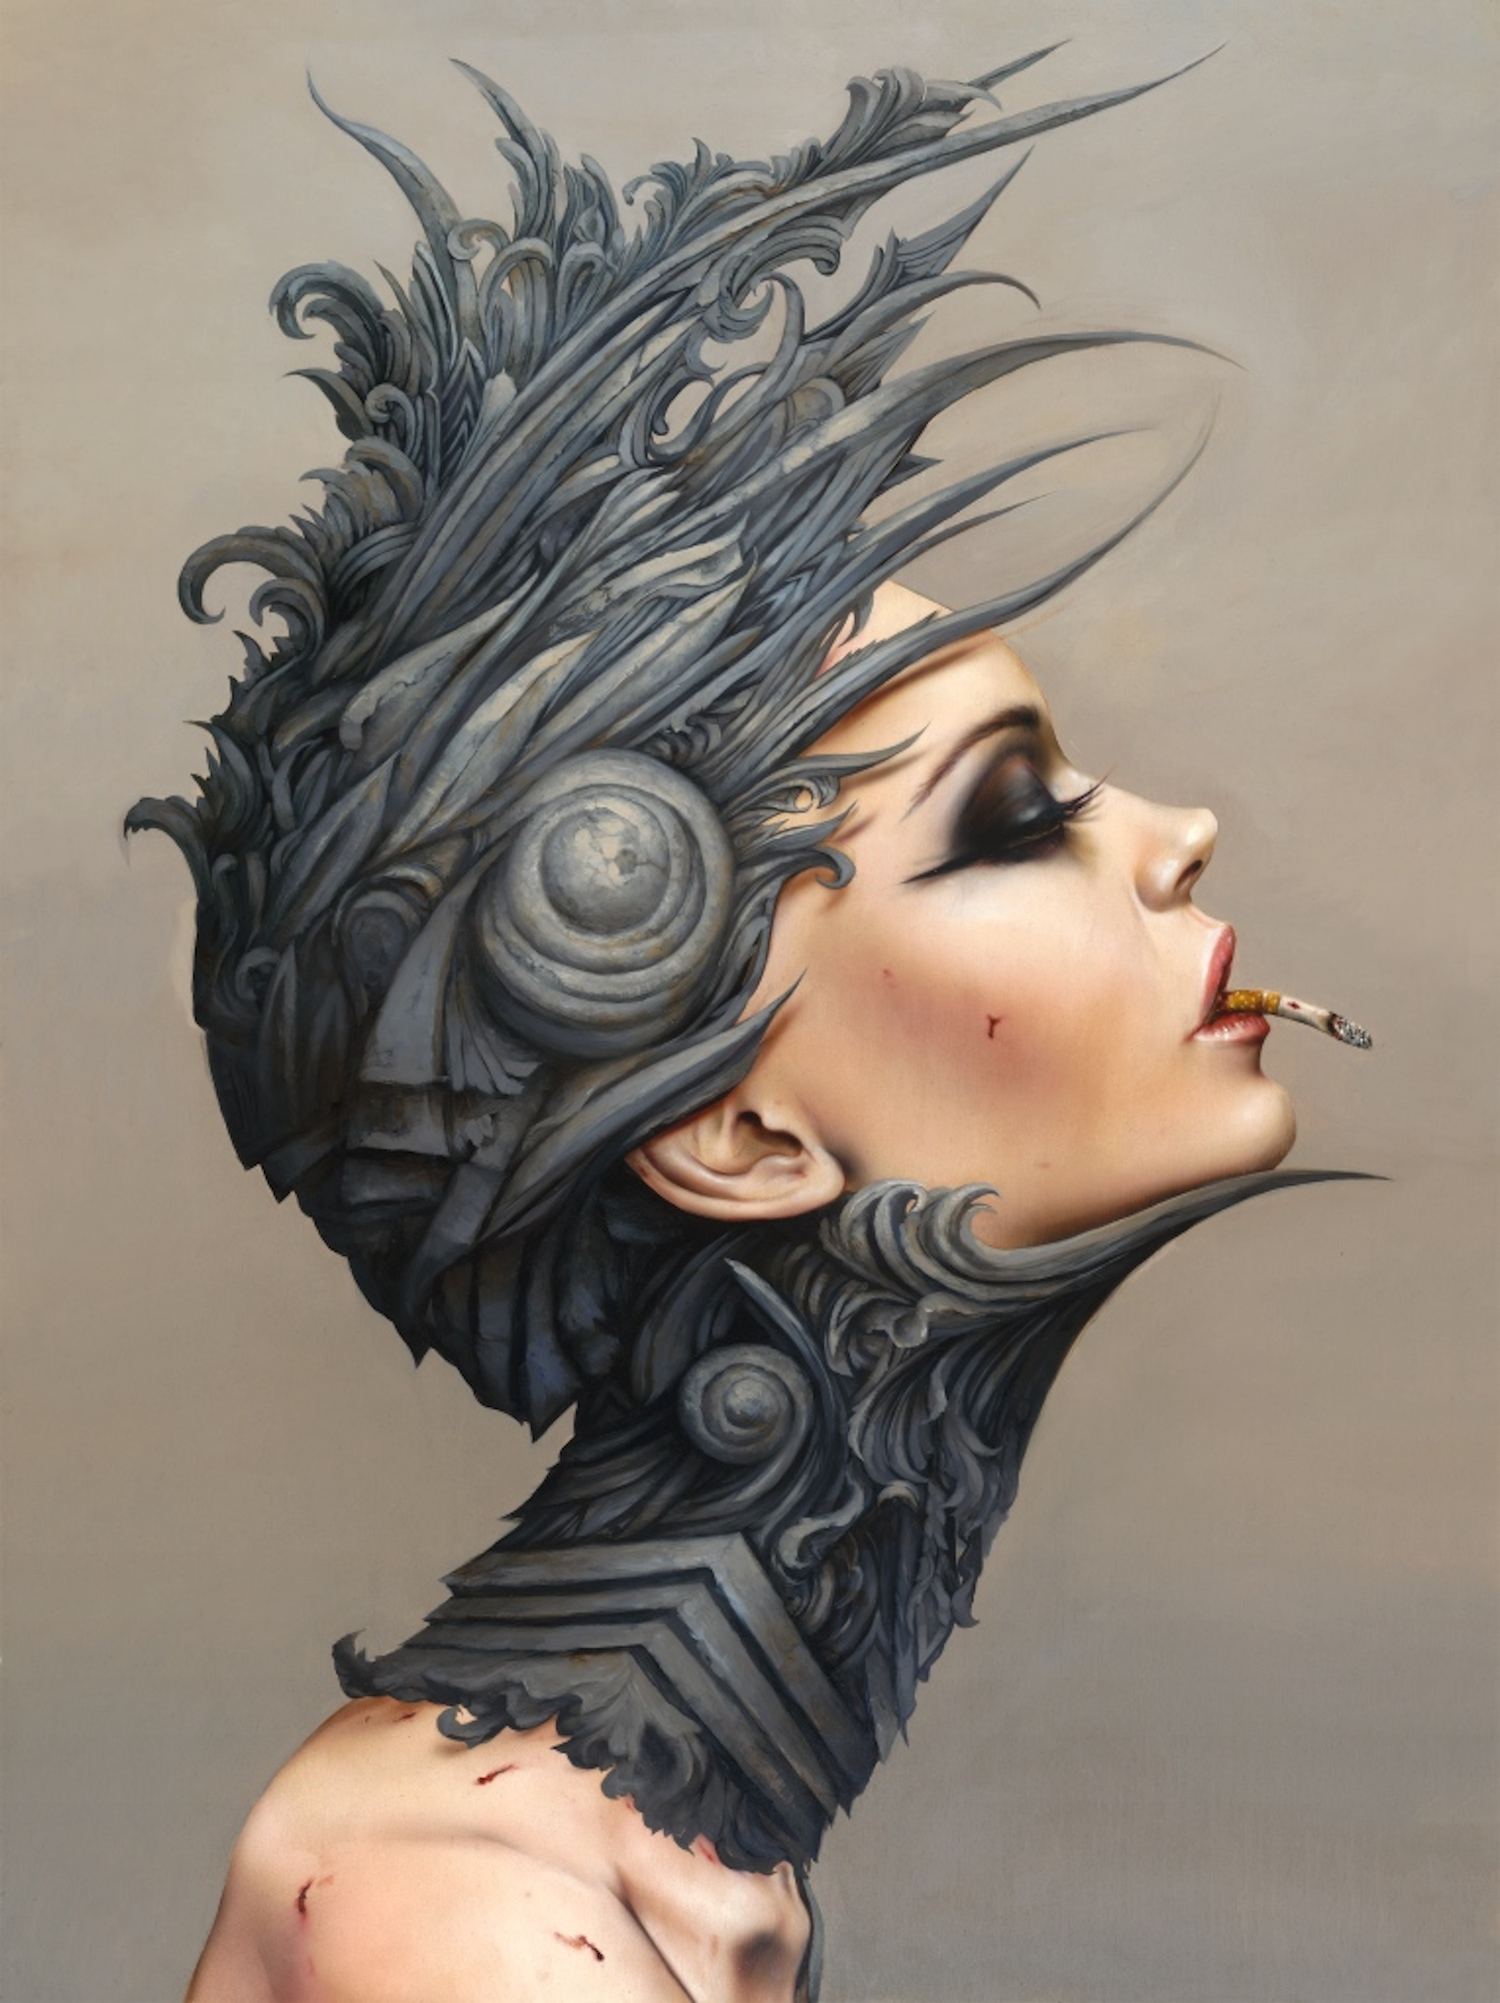 rsz_desensitized13_collaboration_piece__brian_mviveros_dan_quintana